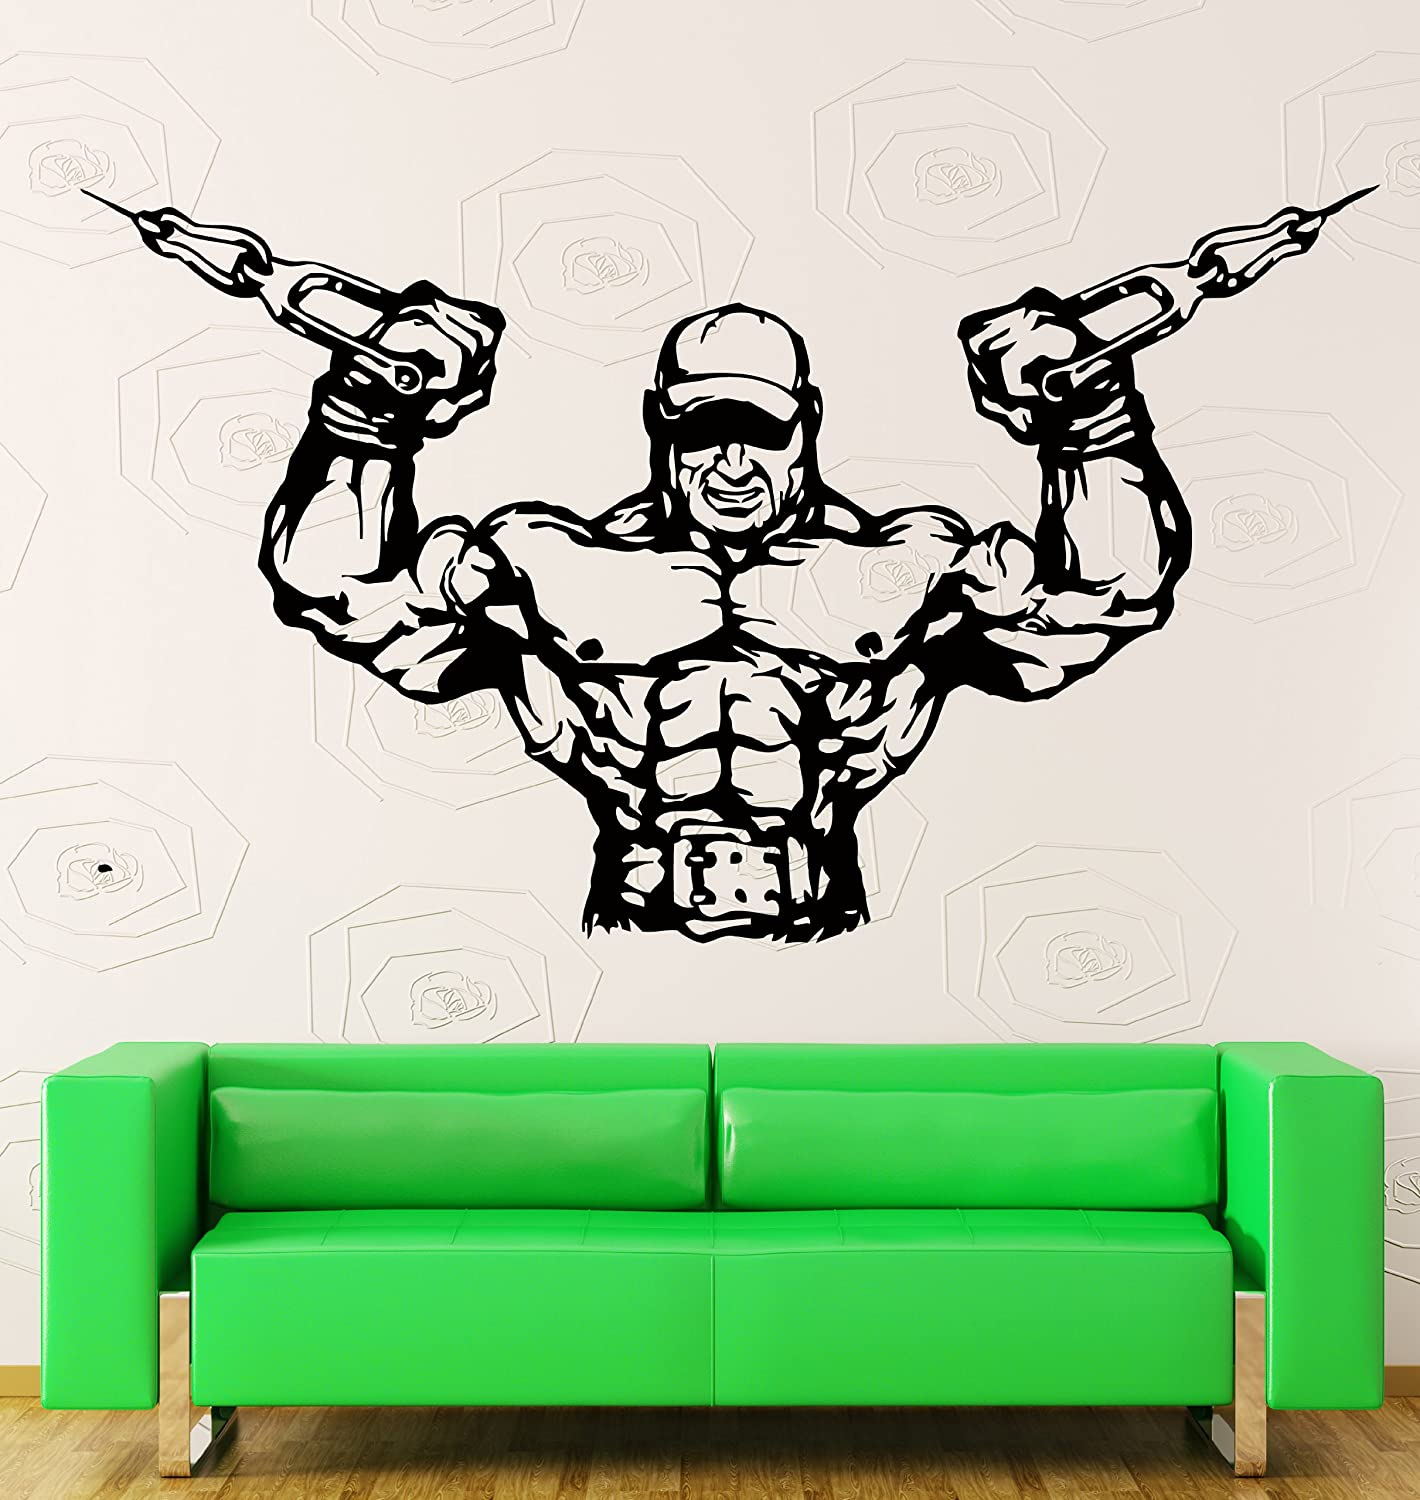 Amazon vinyl decal wall sticker bodybuilder bodybuilding amazon vinyl decal wall sticker bodybuilder bodybuilding fitness crossfit decor z2201i m 21 in x 35 in home kitchen amipublicfo Images